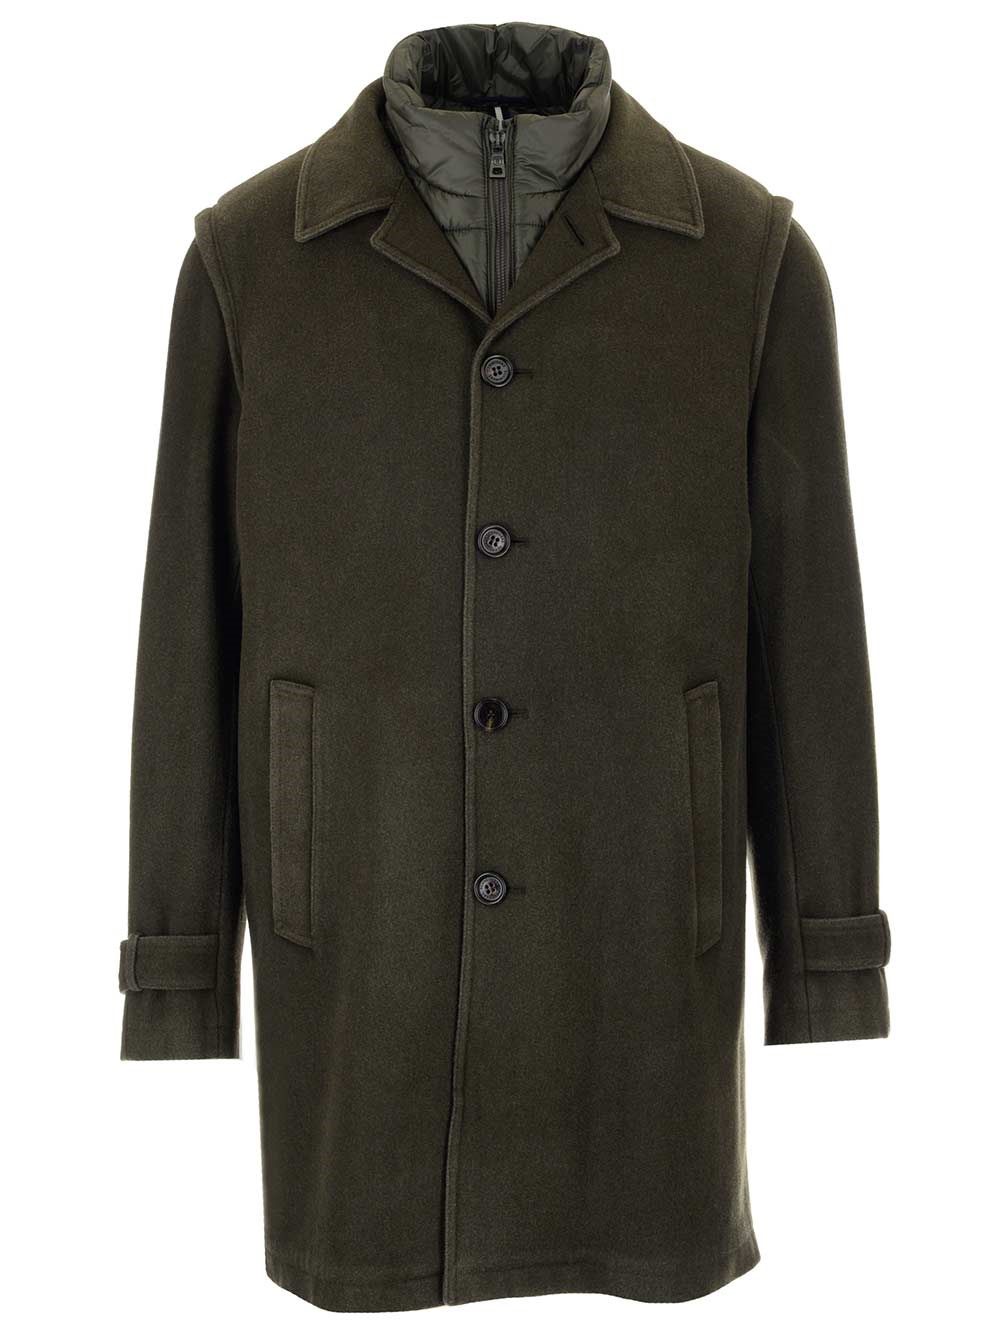 SCHNEIDERS Loden Wool Coat With Padded Vest